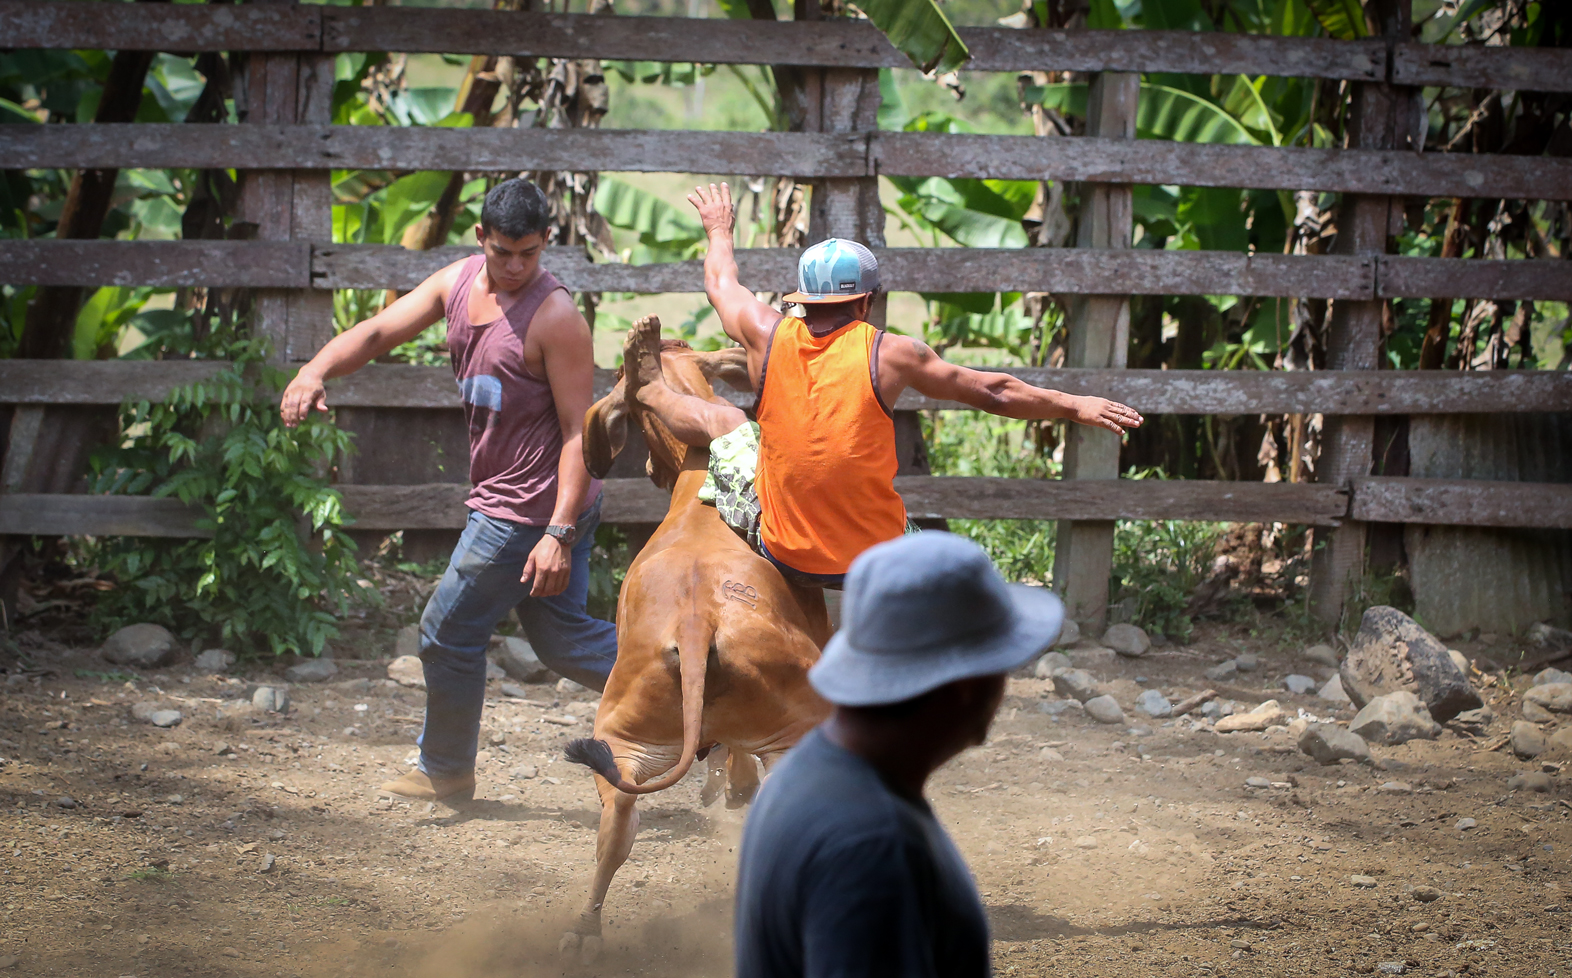 Paison, the barefooted Tico, gets dumped to the ground by a bucking bull.